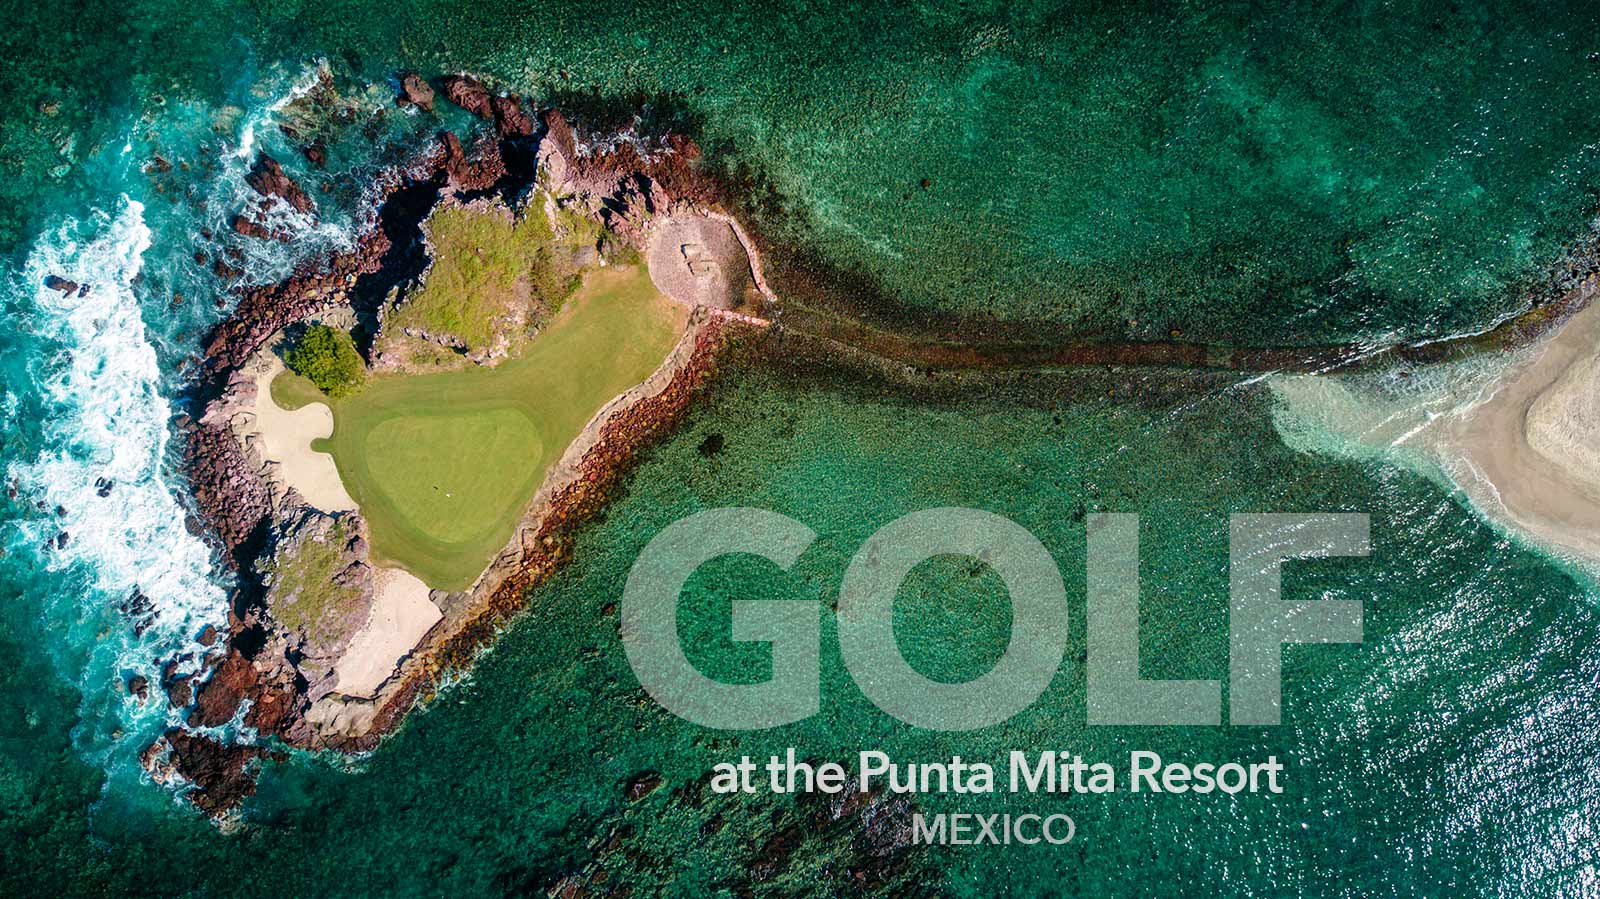 GOLF at the Punta Mita Resort - Explore the two Jack Nicklaus golf courses at the St. Regis / Four Seasons Resort - Riviera Nayarit, Mexico